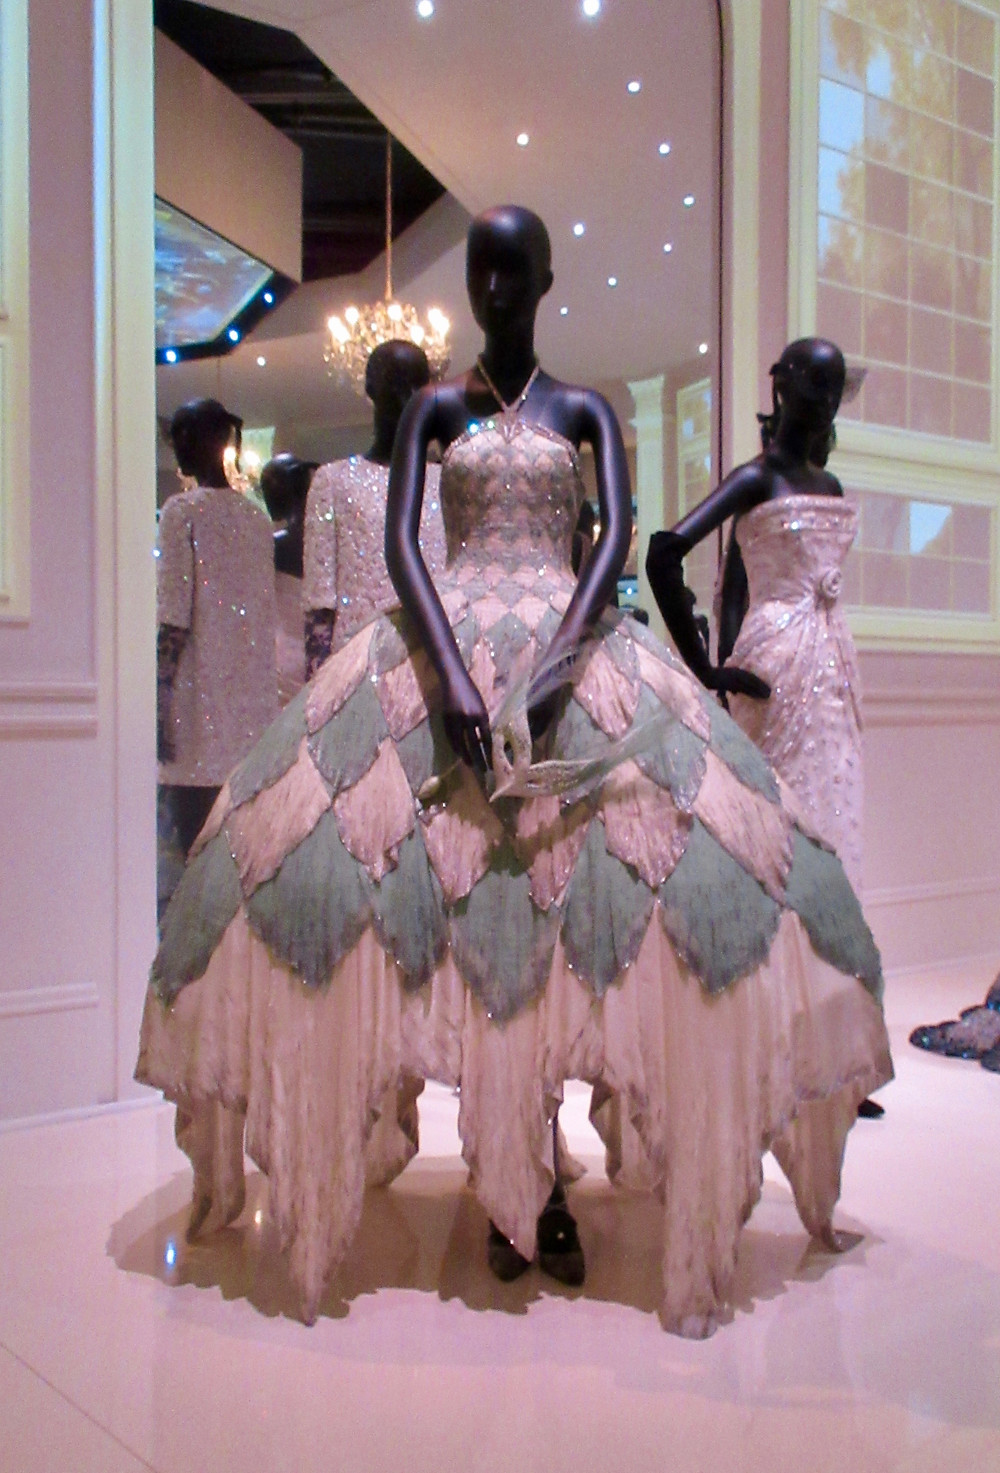 Arlequin d'Eau Argentee Dress (Silvery Watery Harlequin) by John Galliano Haute Couture Spring Summer 1998. Chiffon silk, beads and swarovski crystals